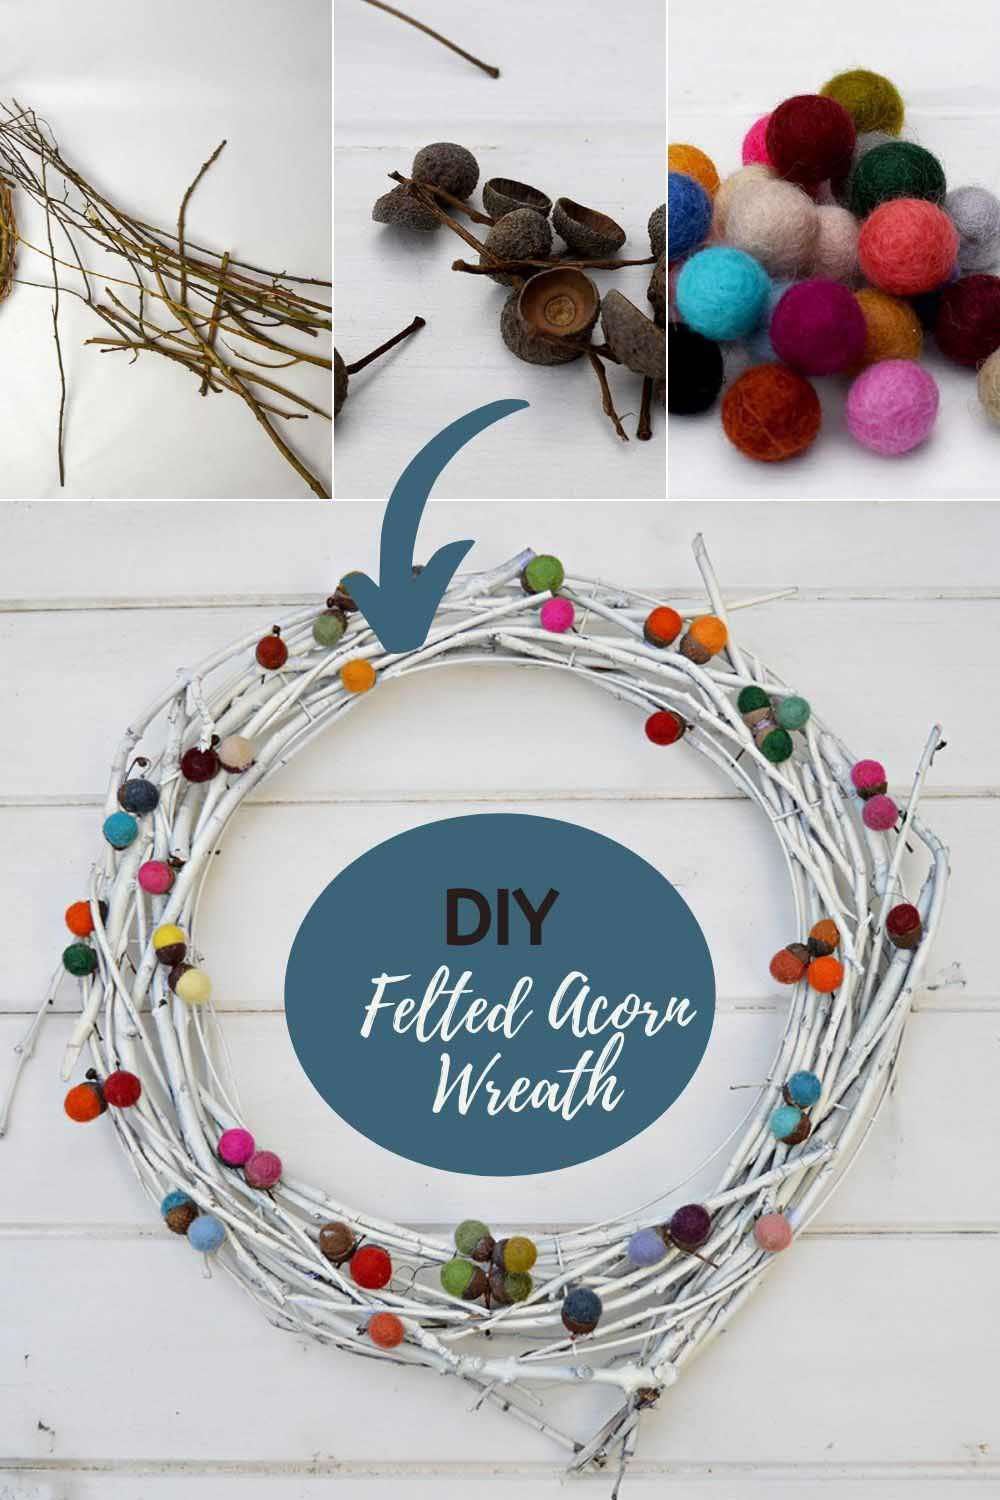 DIY felted acorn wreath